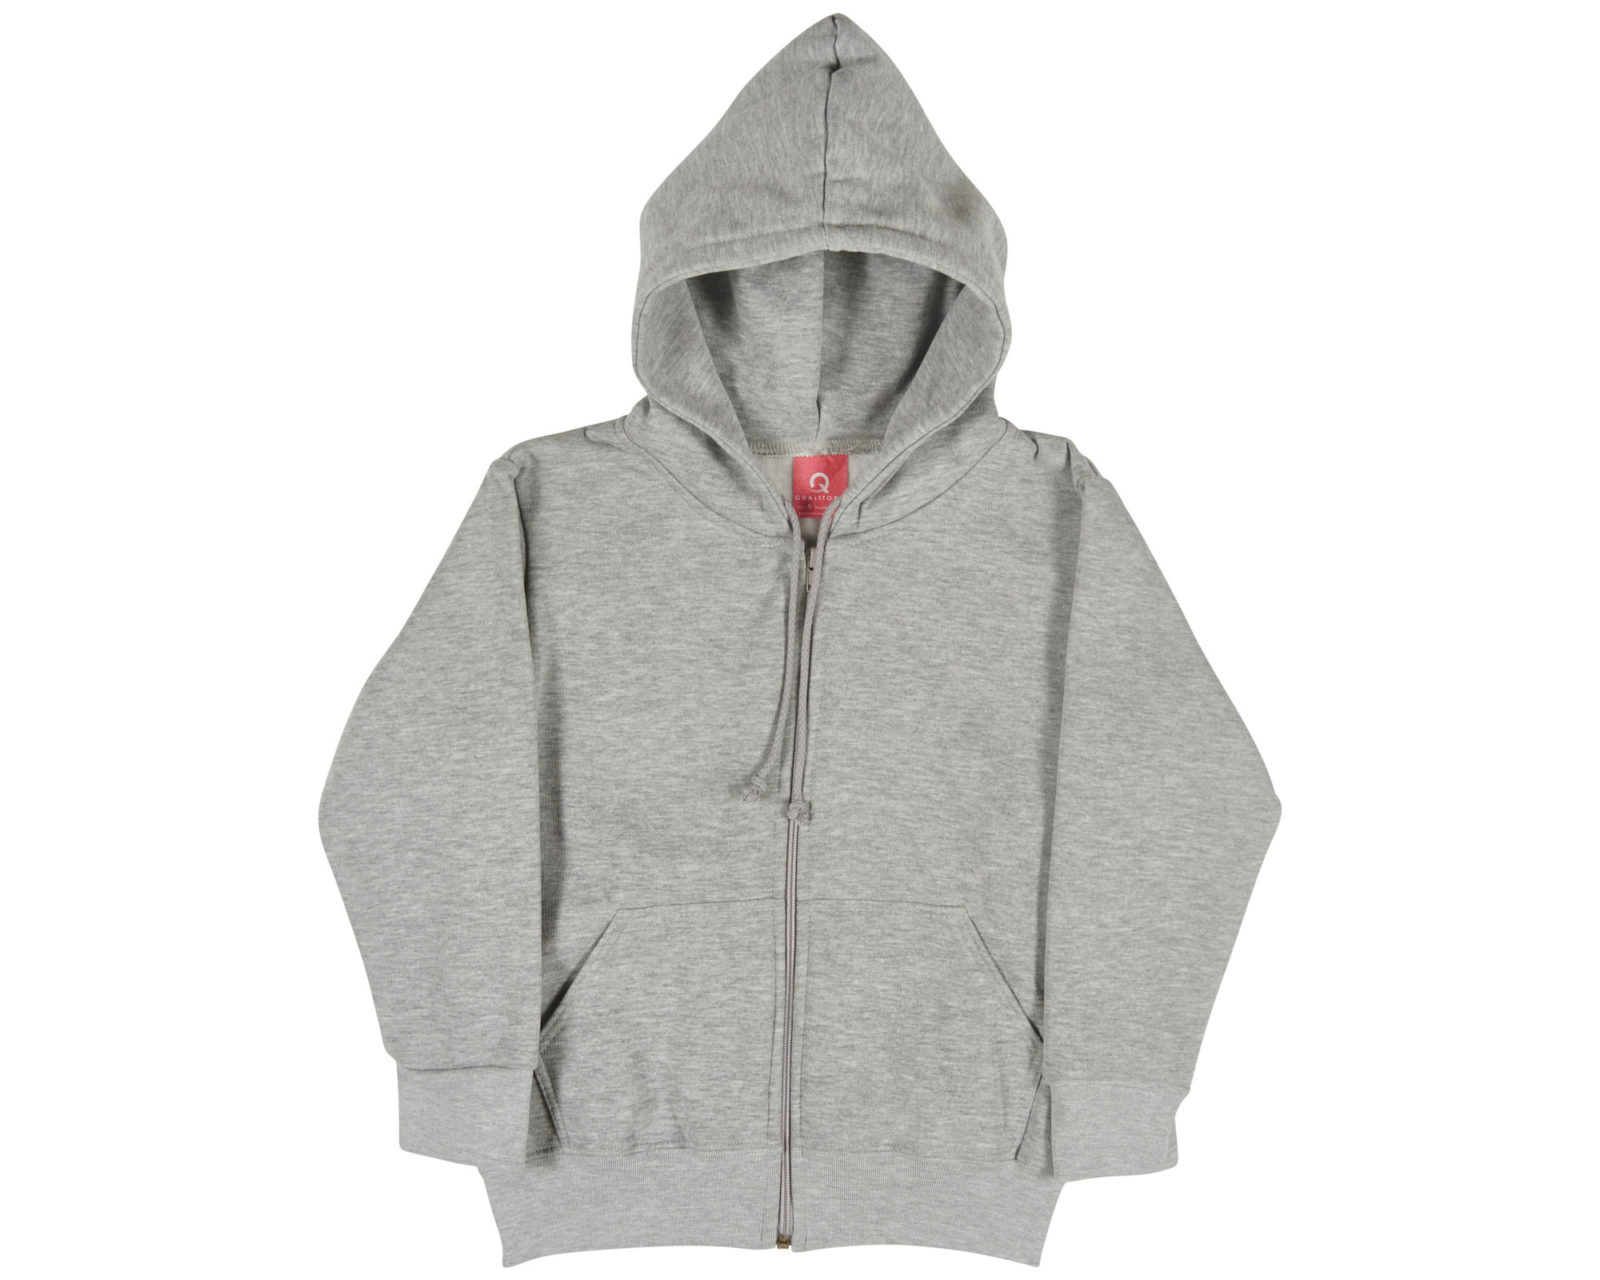 Qualitops Kids Zip Hoodie Polycotton Australian made clothing